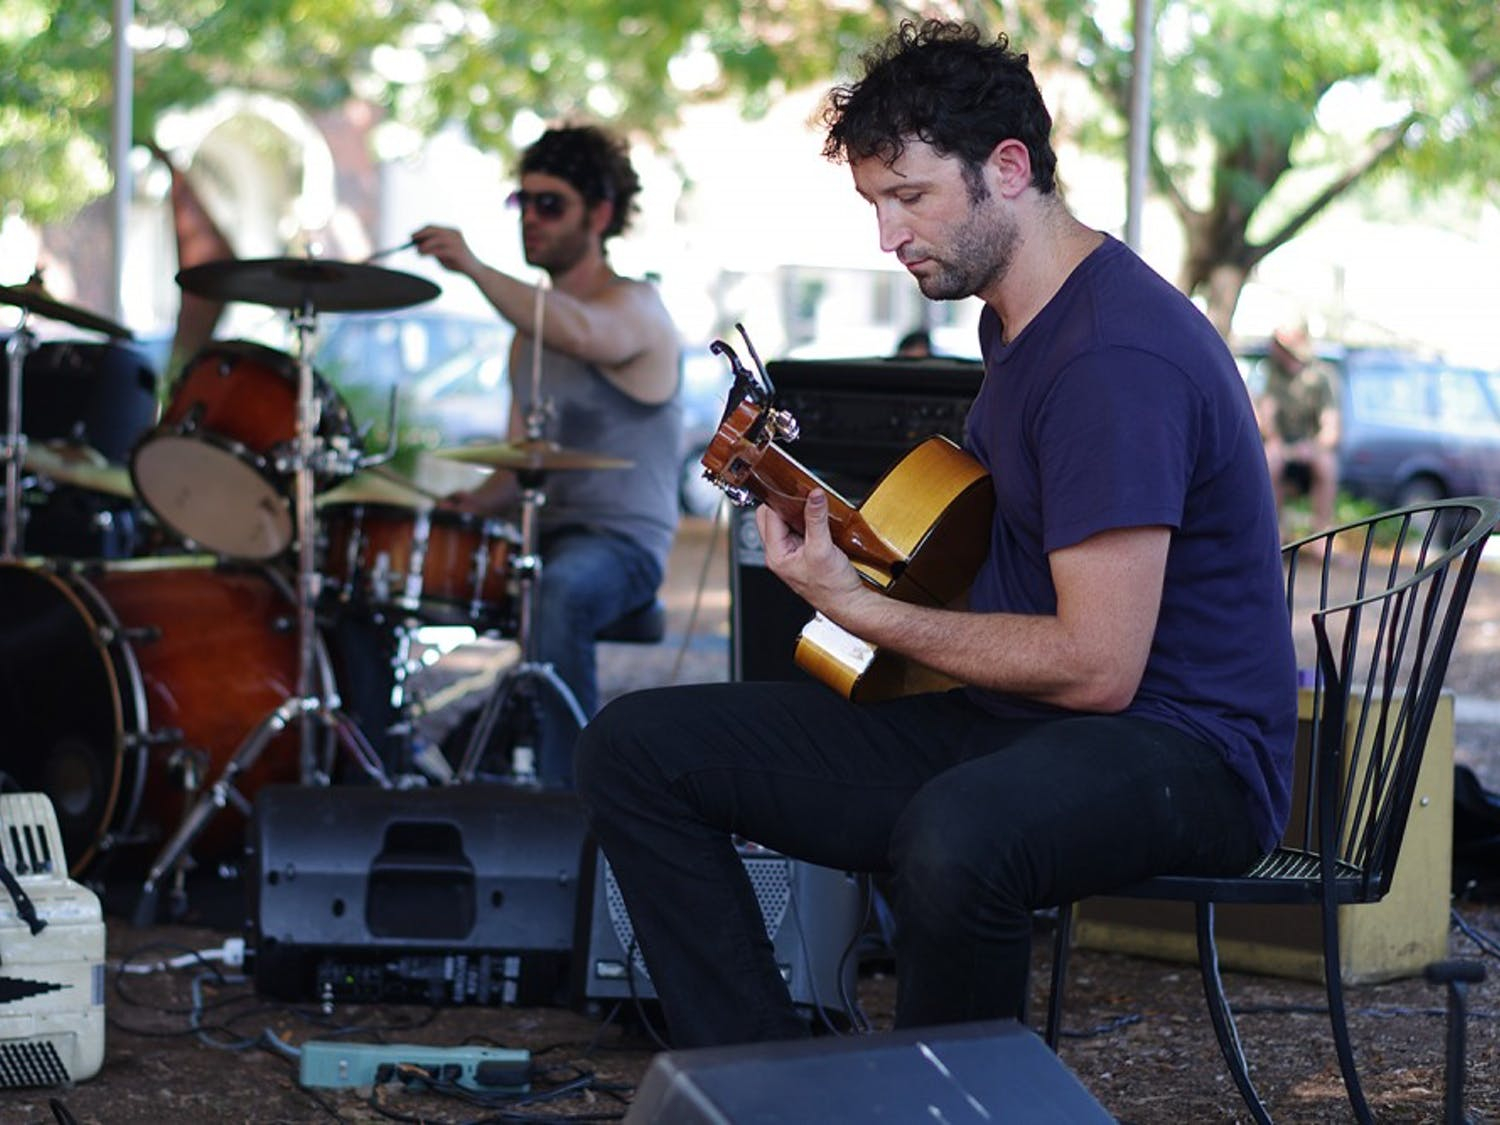 The Weaver Street Market Co-op  Fair happened on Saturday in Carrboro from 3-5 pm. Local companies and producers came together to offer food, live music, and beer and wine samplings.